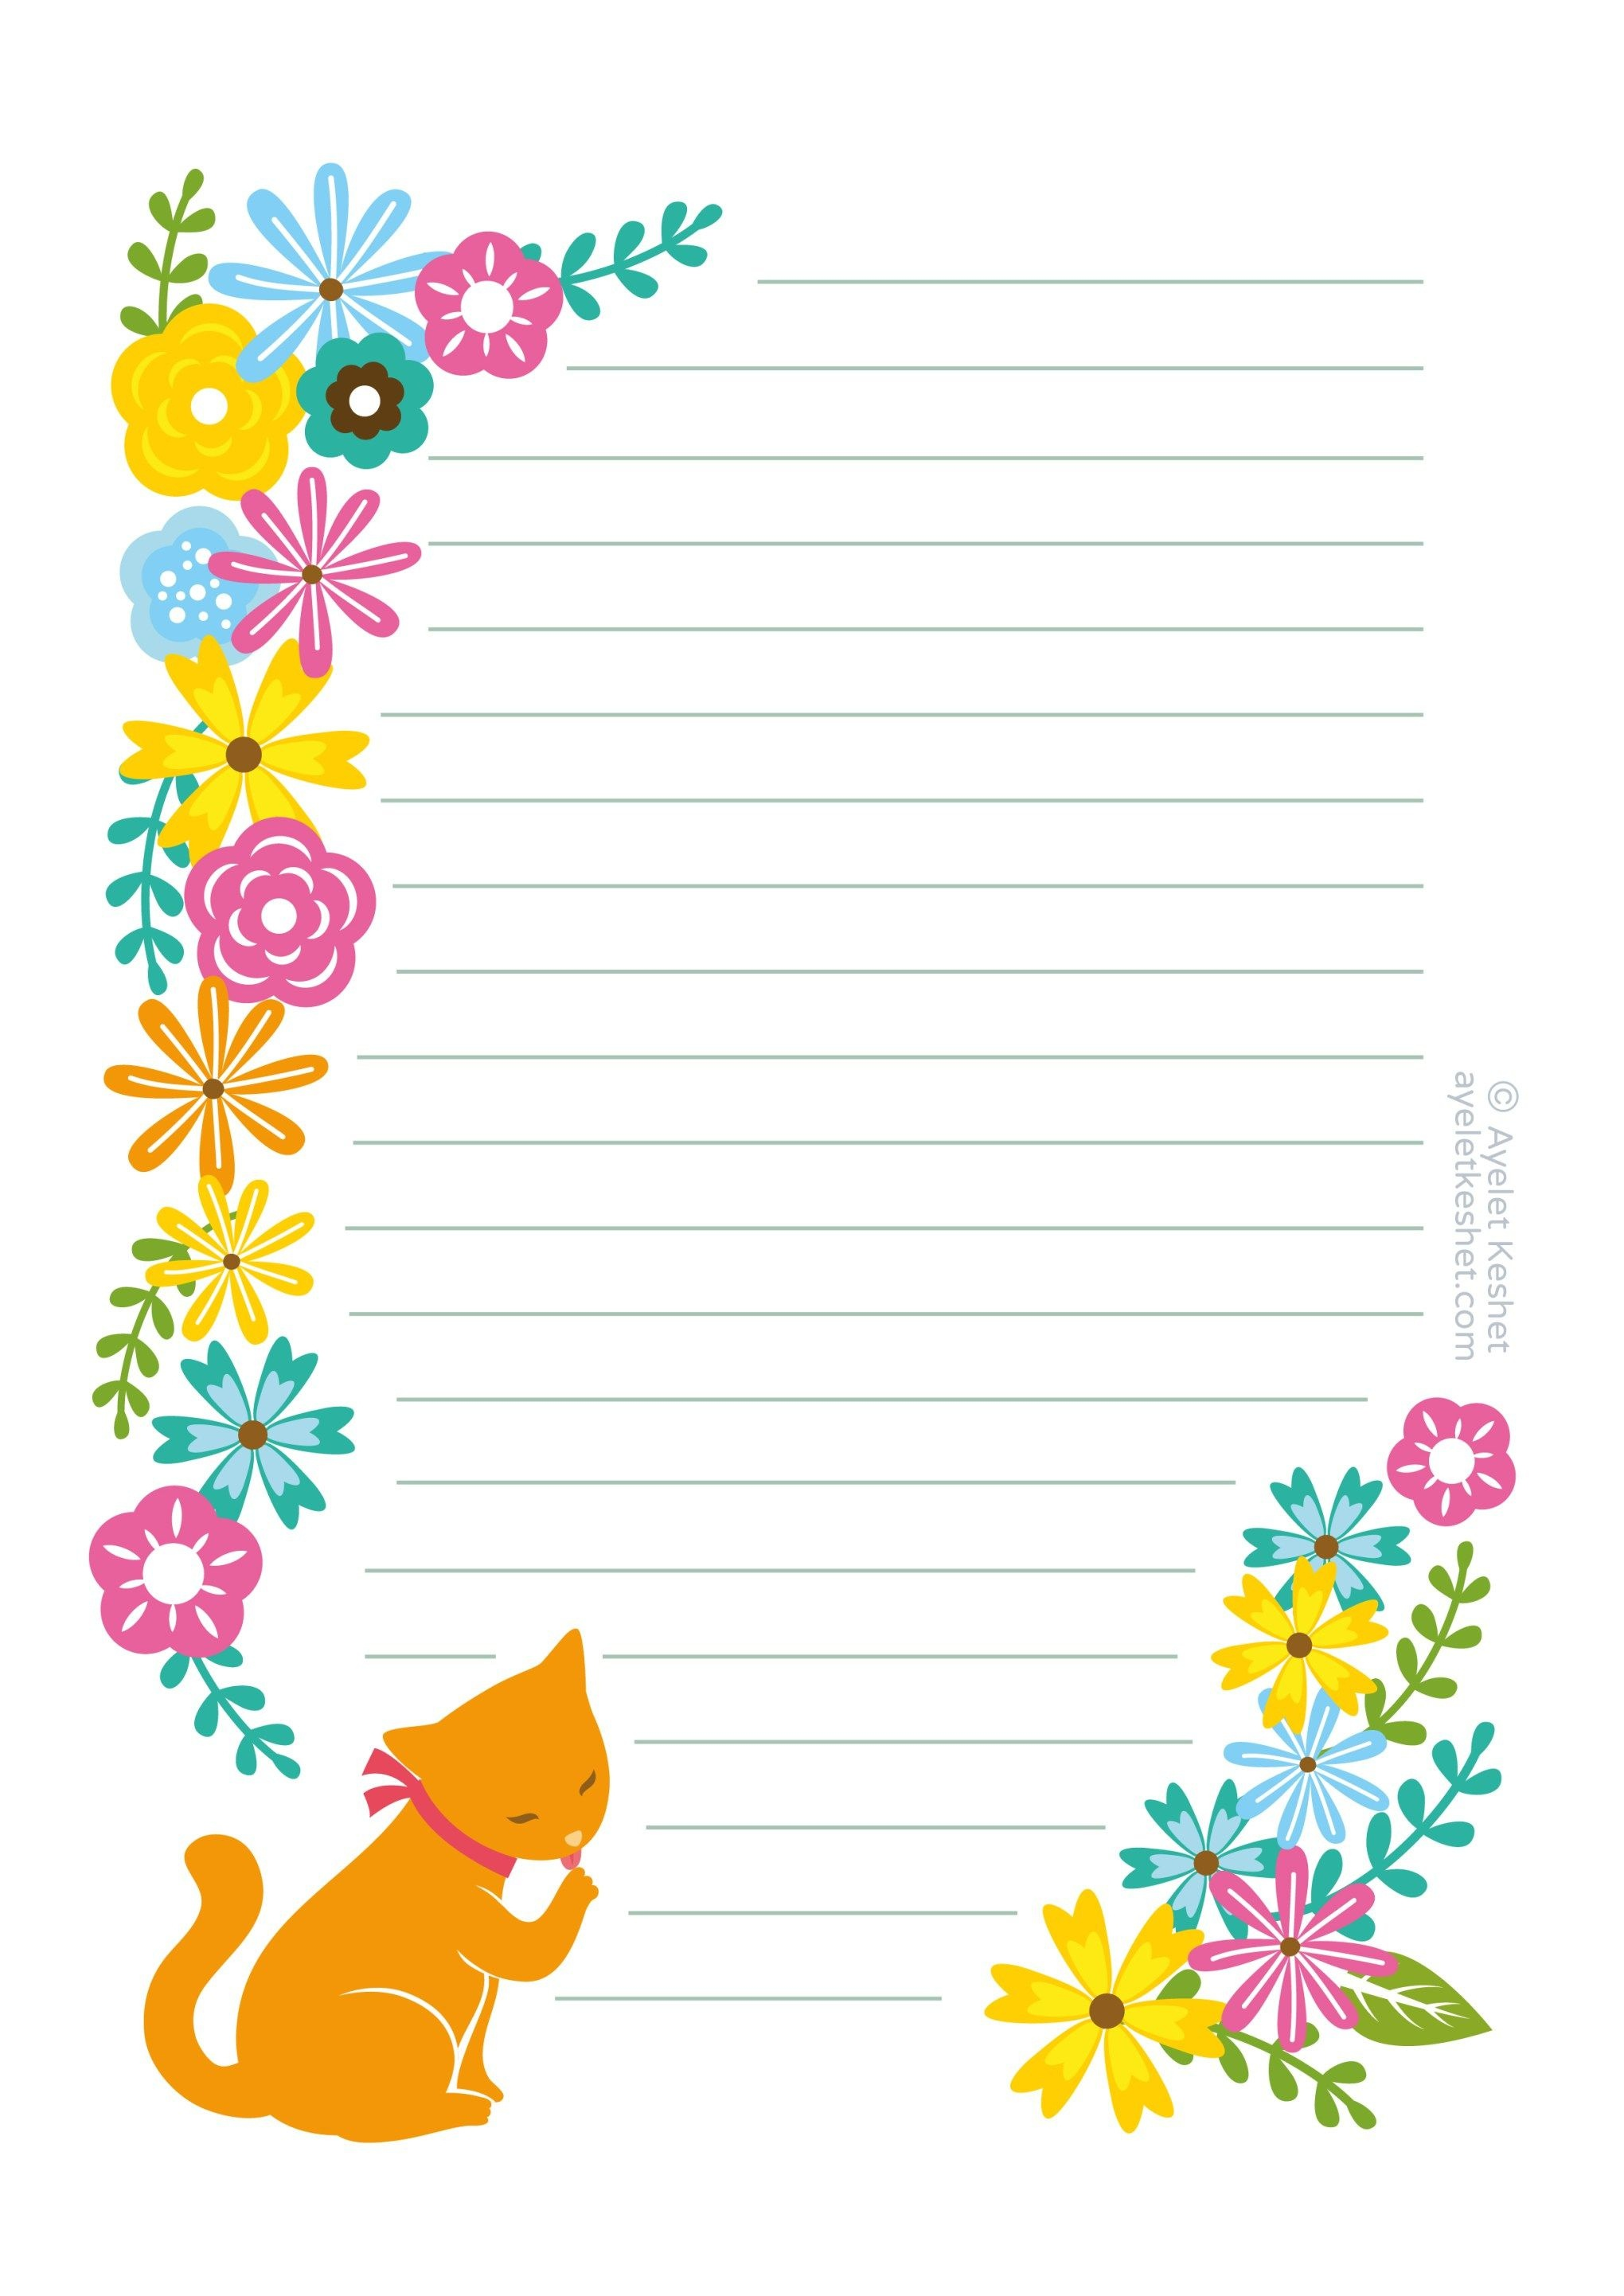 Free Printable Letter Paper   Printables To Go   Free Printable - Free Printable Stationary Pdf